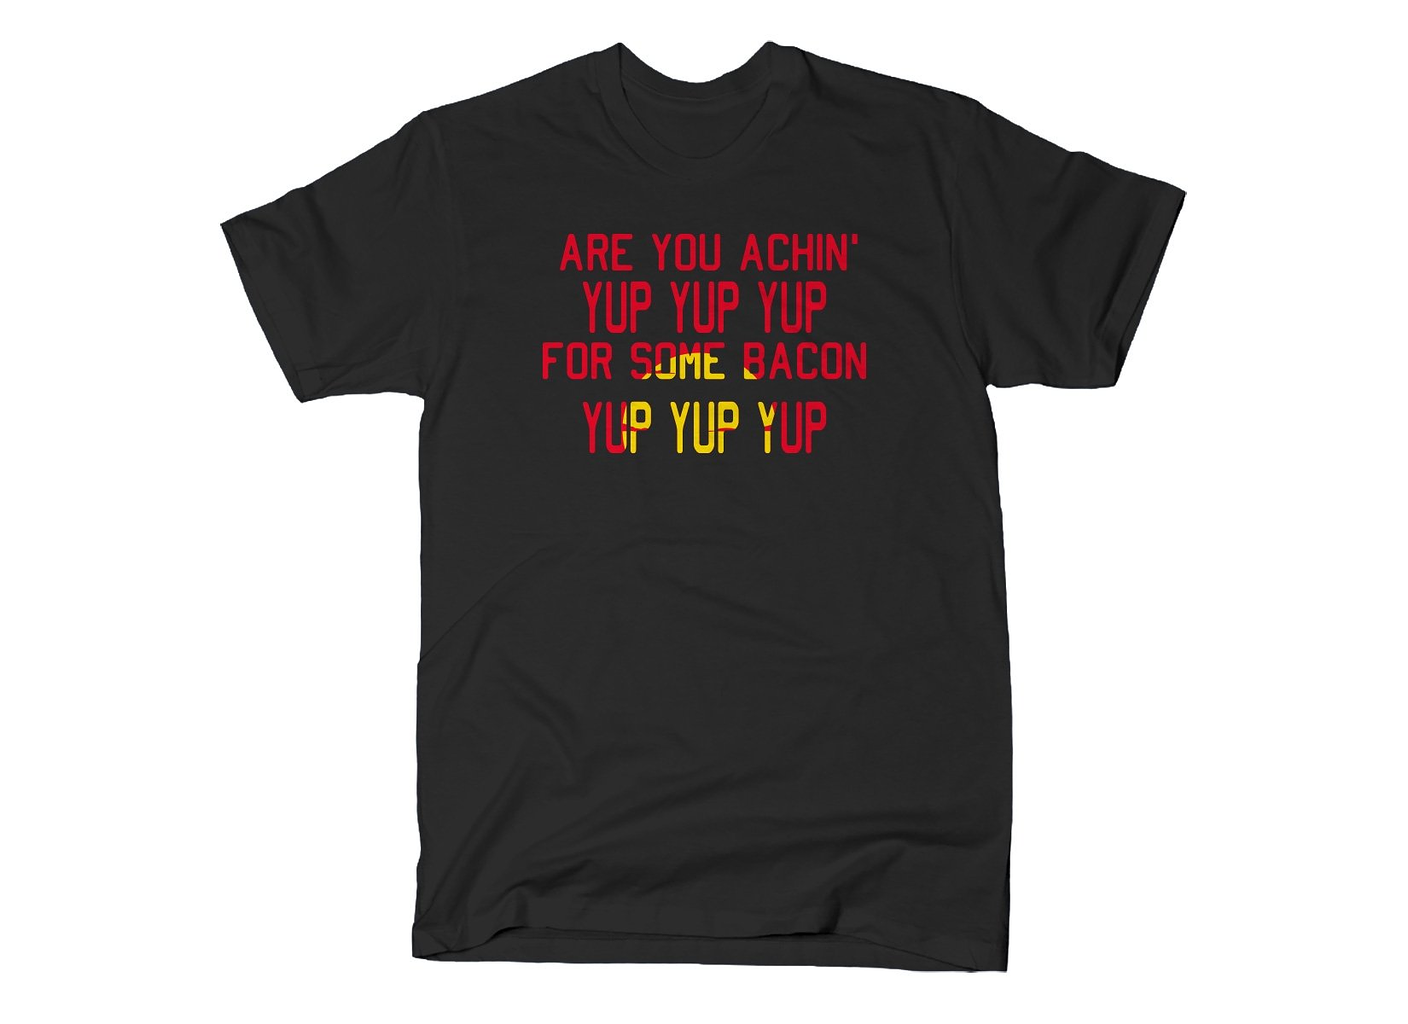 SnorgTees: Are You Achin' For Some Bacon?